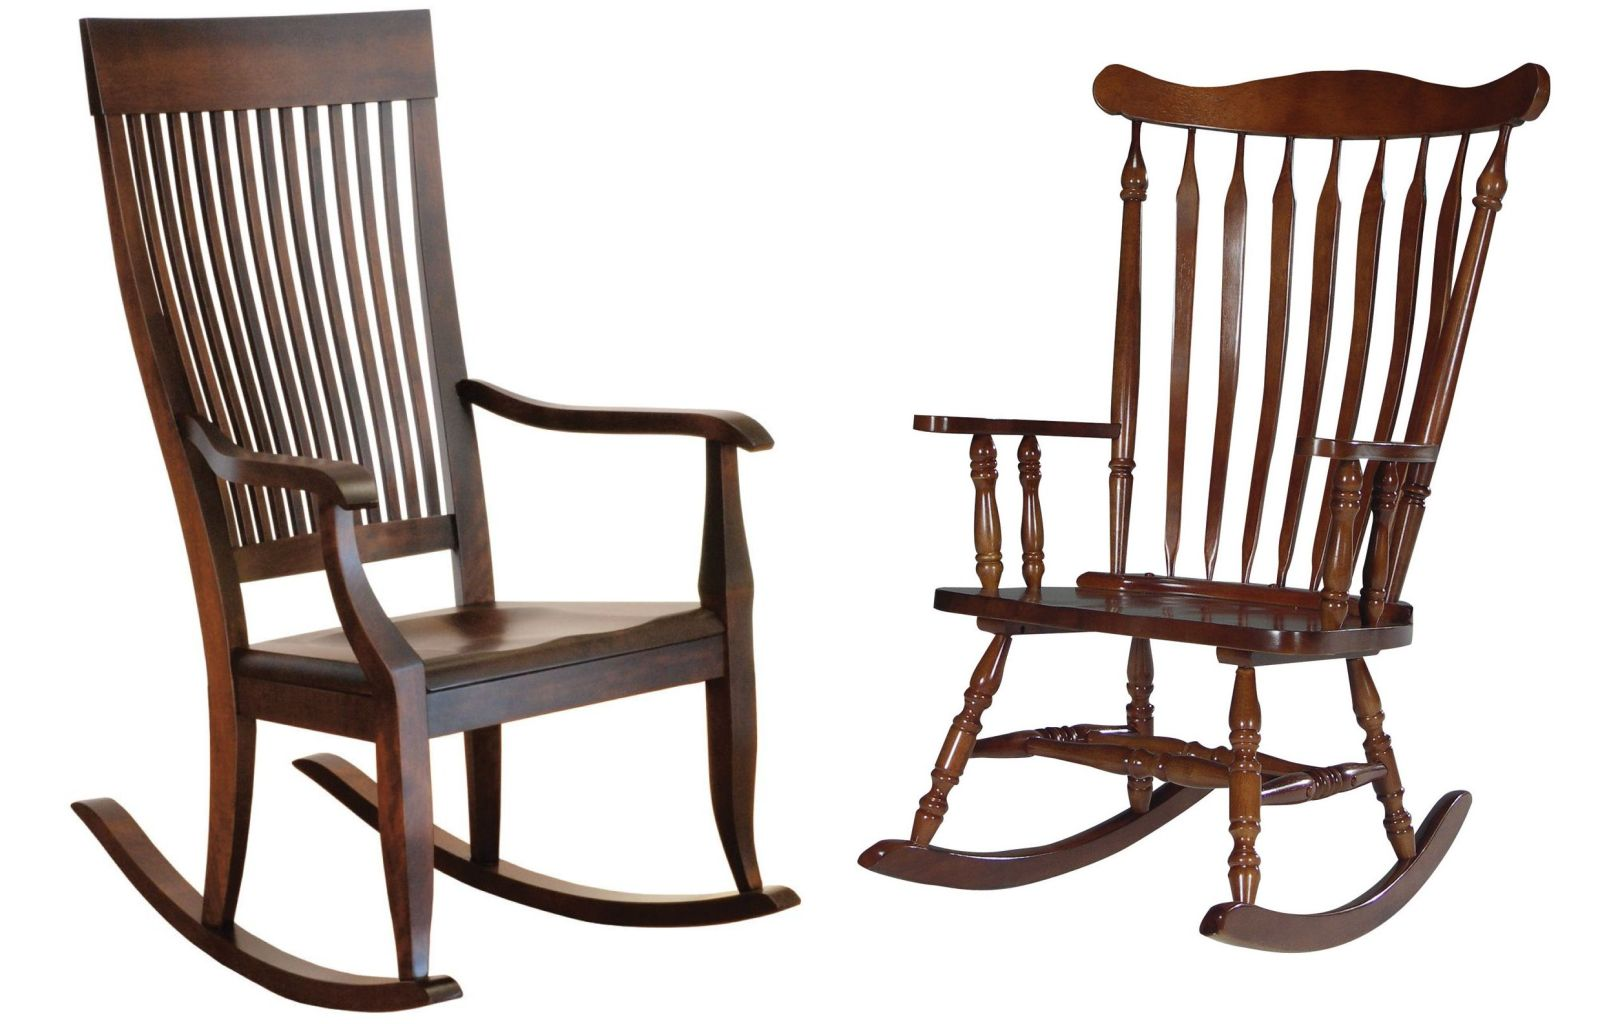 wooden classic style rocking chair bent wood furniture was